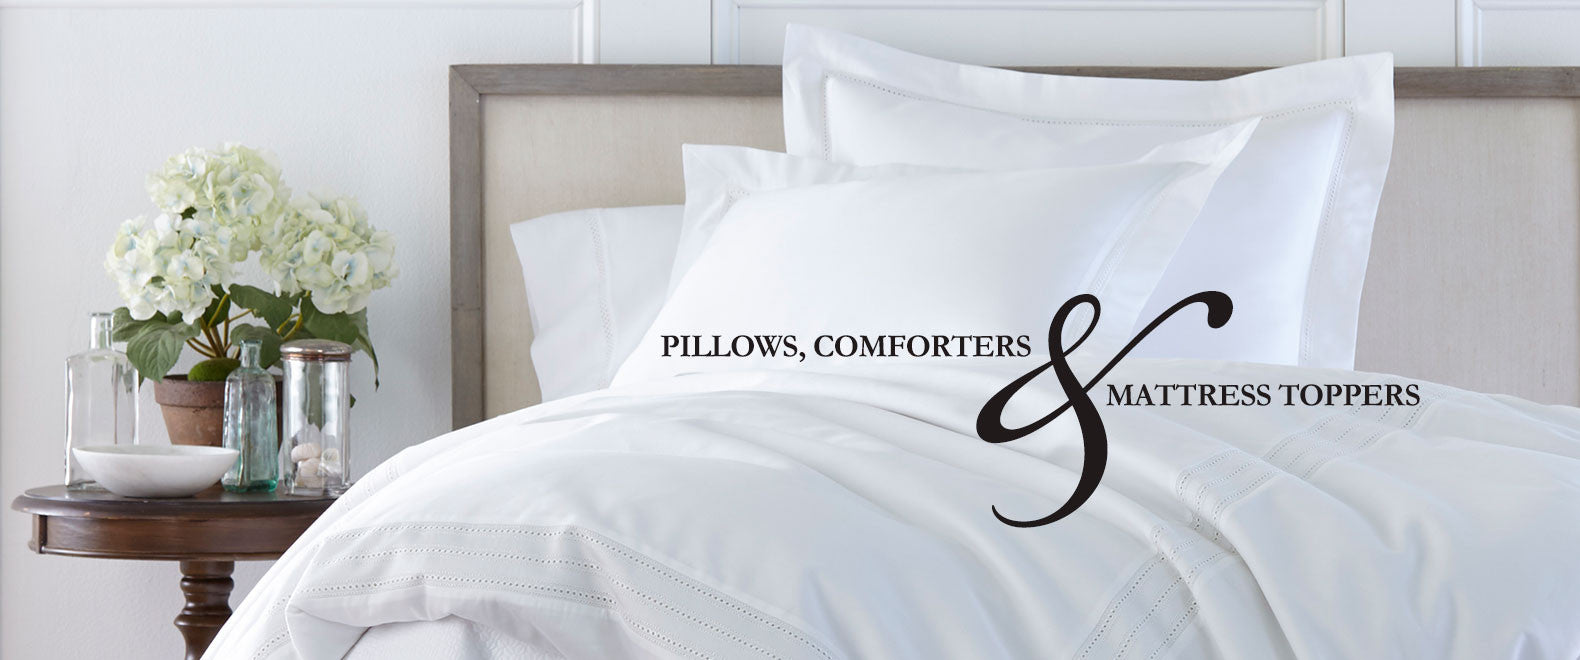 the best pillows, comforters and feather beds